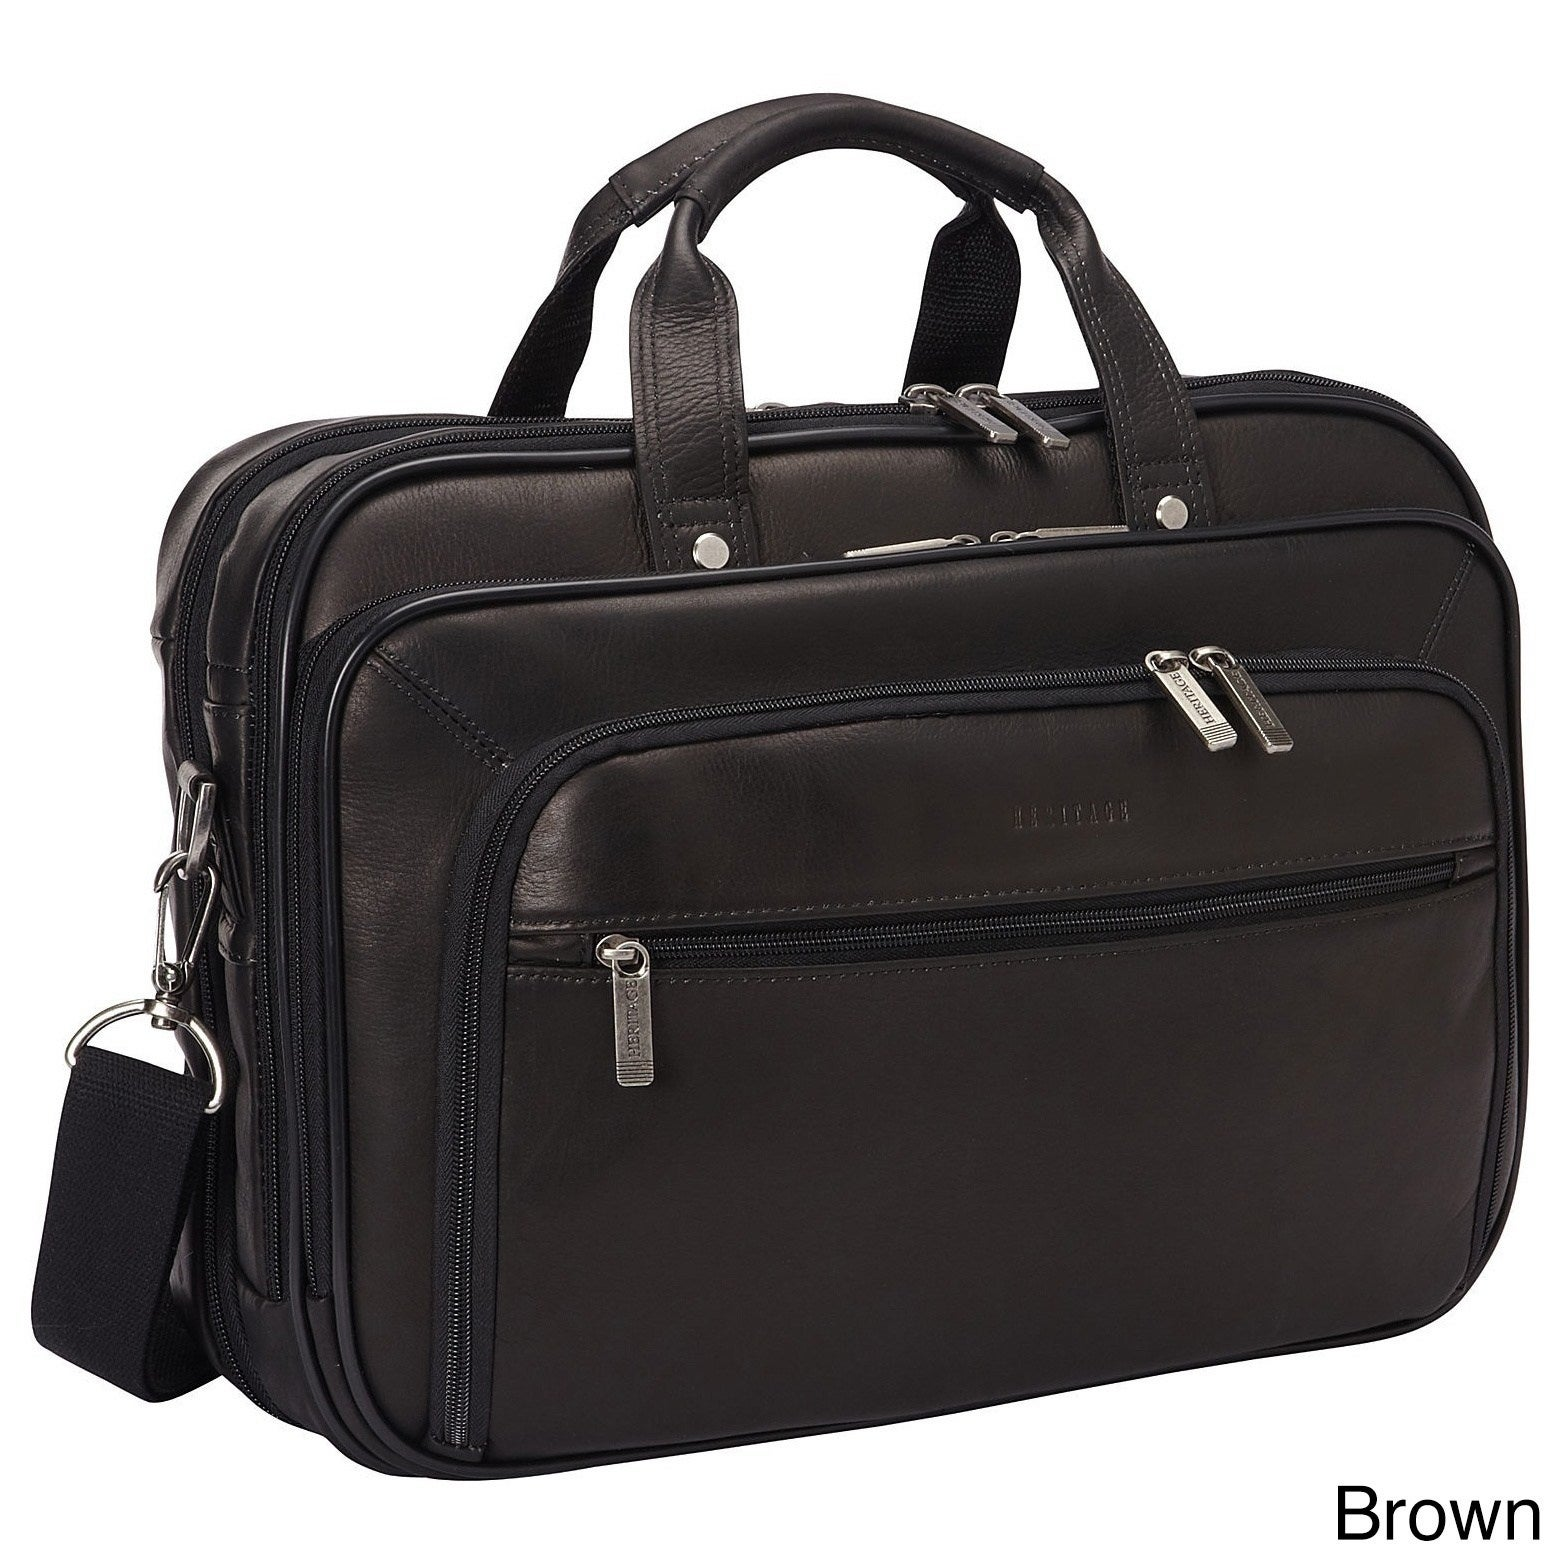 Heritage Travelware Full Grain Colombian Leather Tsa Checkpoint Friendly Ez Scan 15 6 Inch Laptop Briefcase